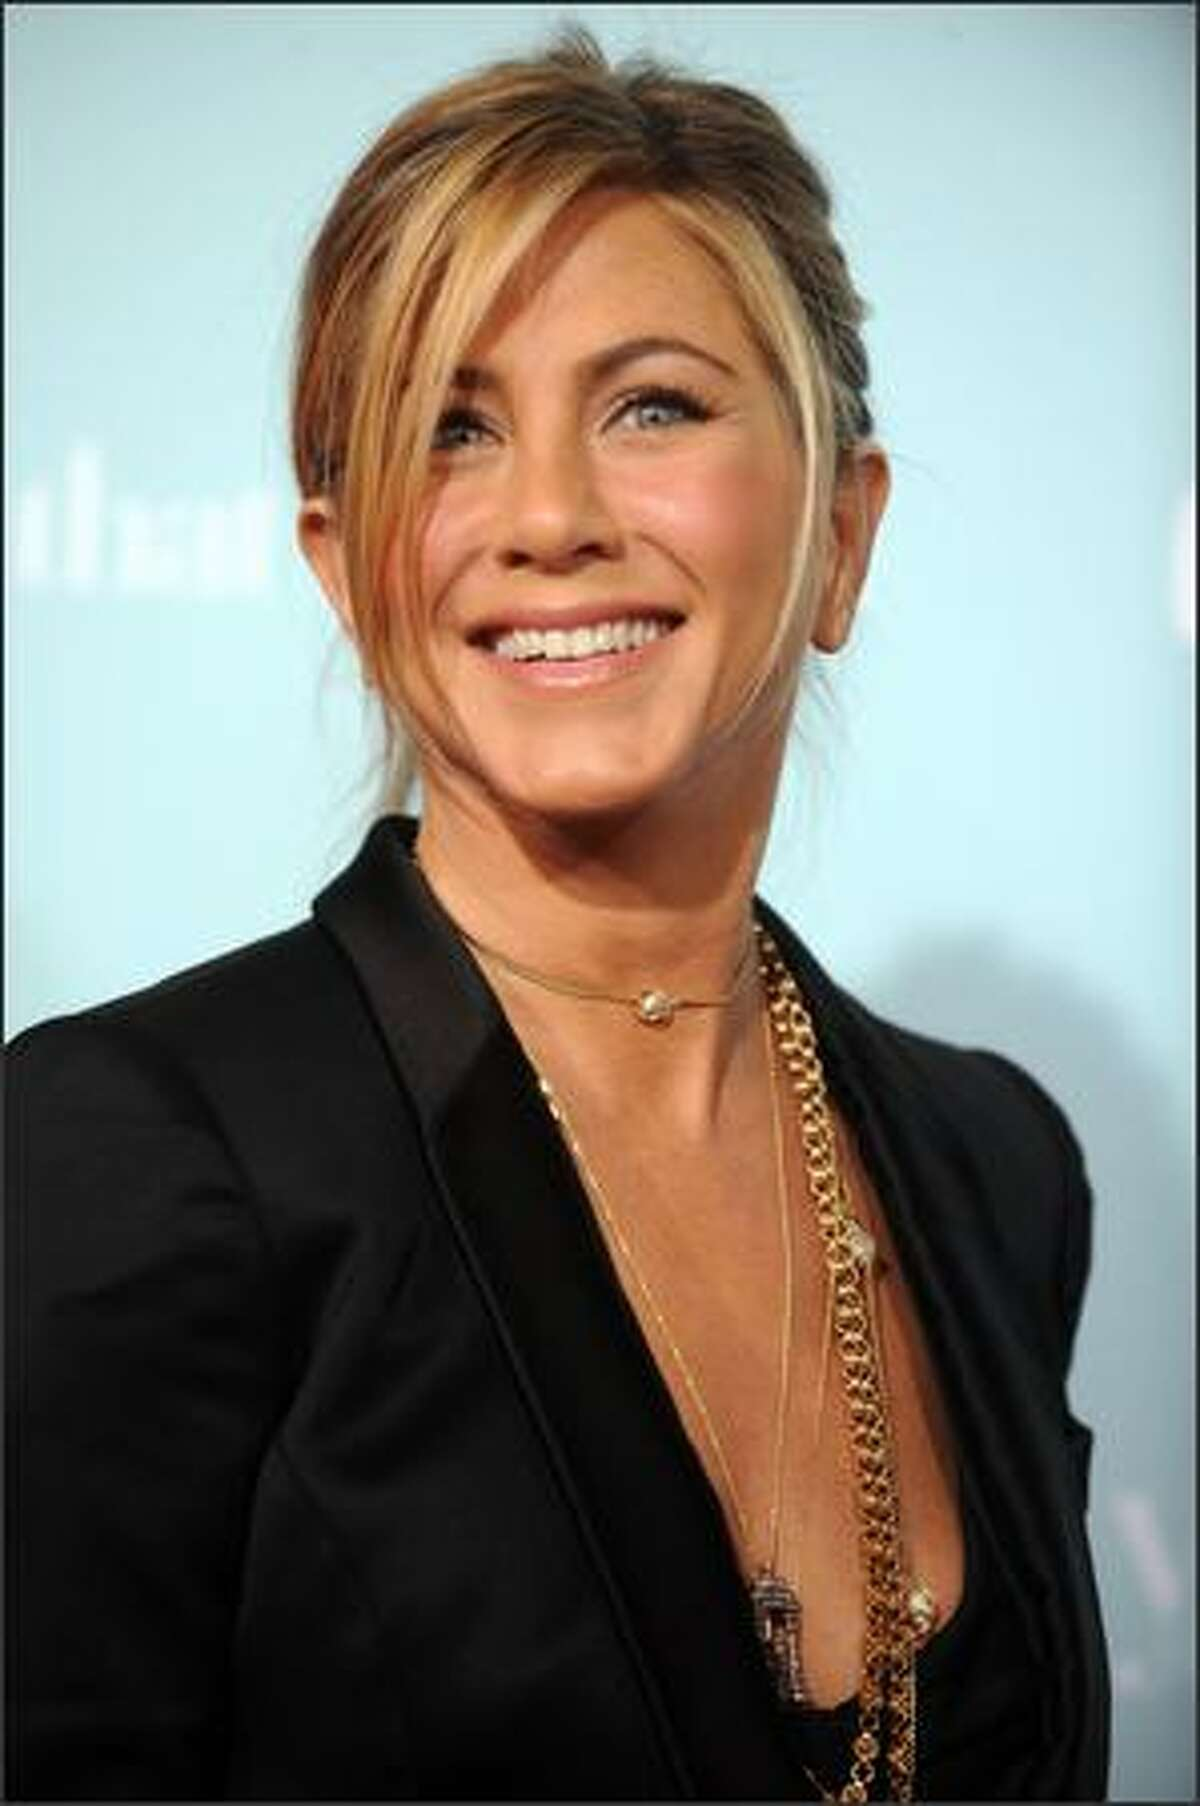 """Actress Jennifer Aniston arrives for the World premiere of """"He's Just Not That Into You"""" at the Grauman's Chinese Theatre in Los Angeles on Tuesday."""